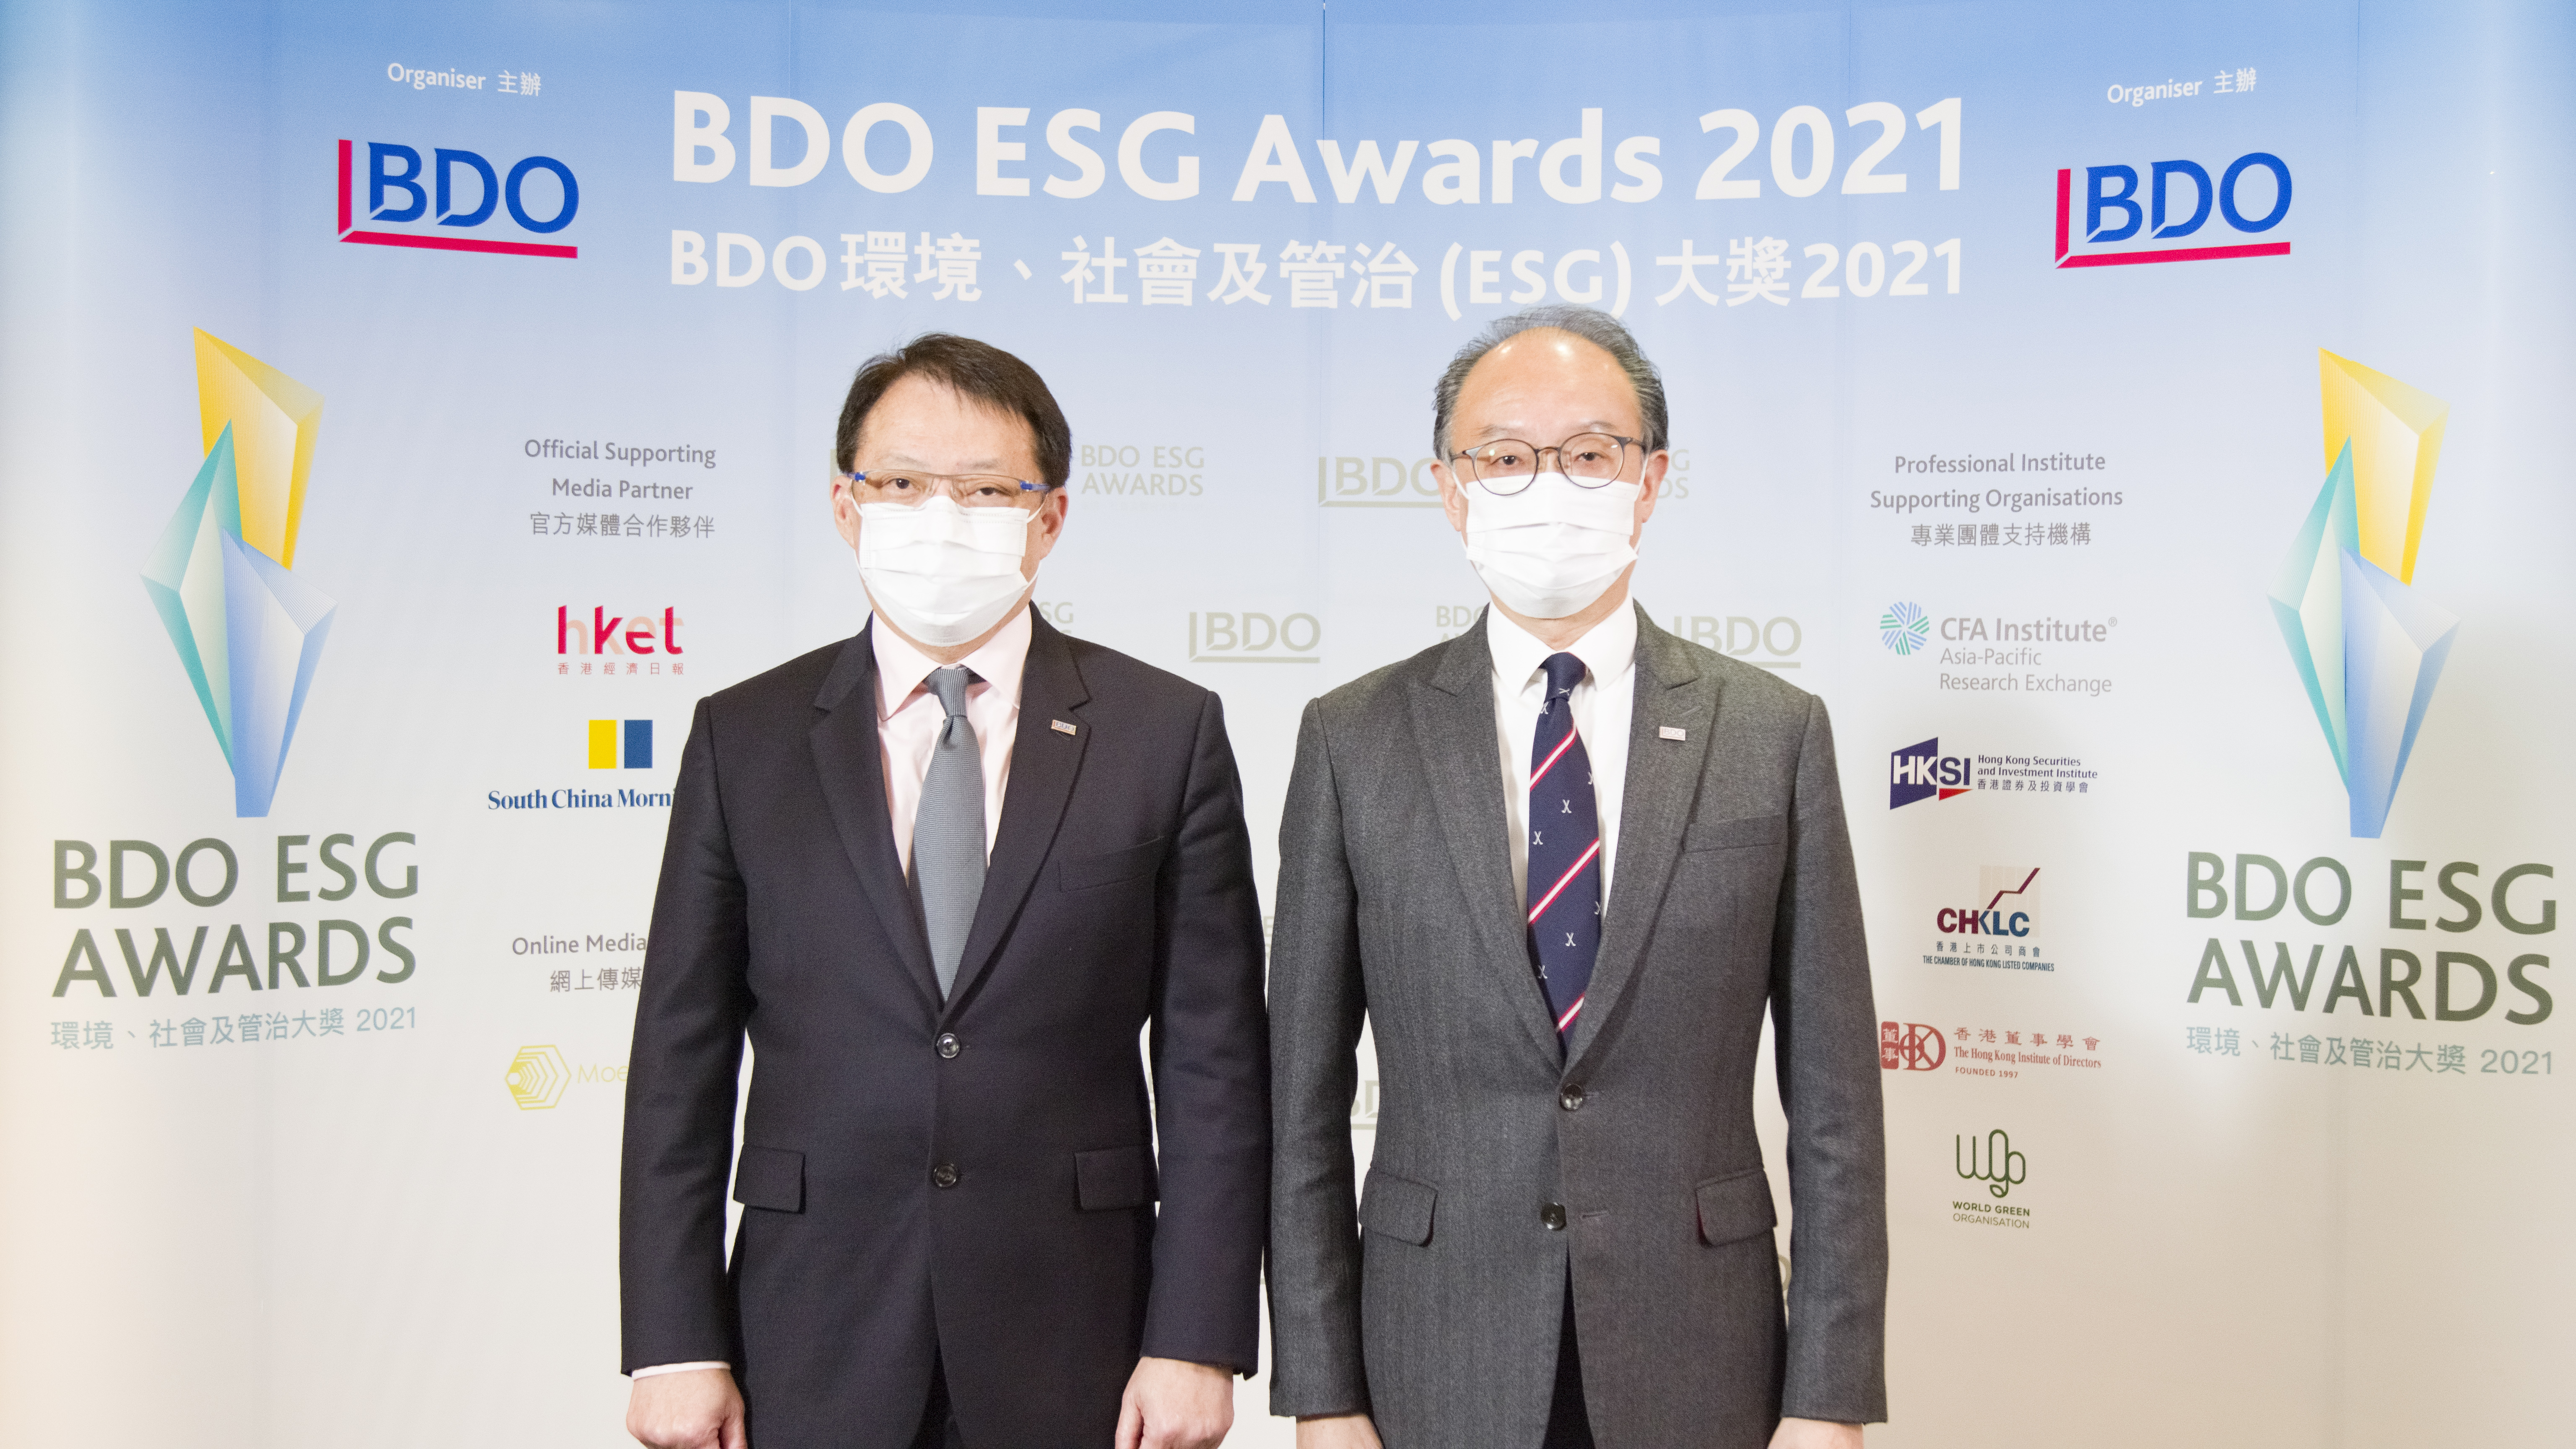 BDO announces winners of the BDO ESG Awards 2021